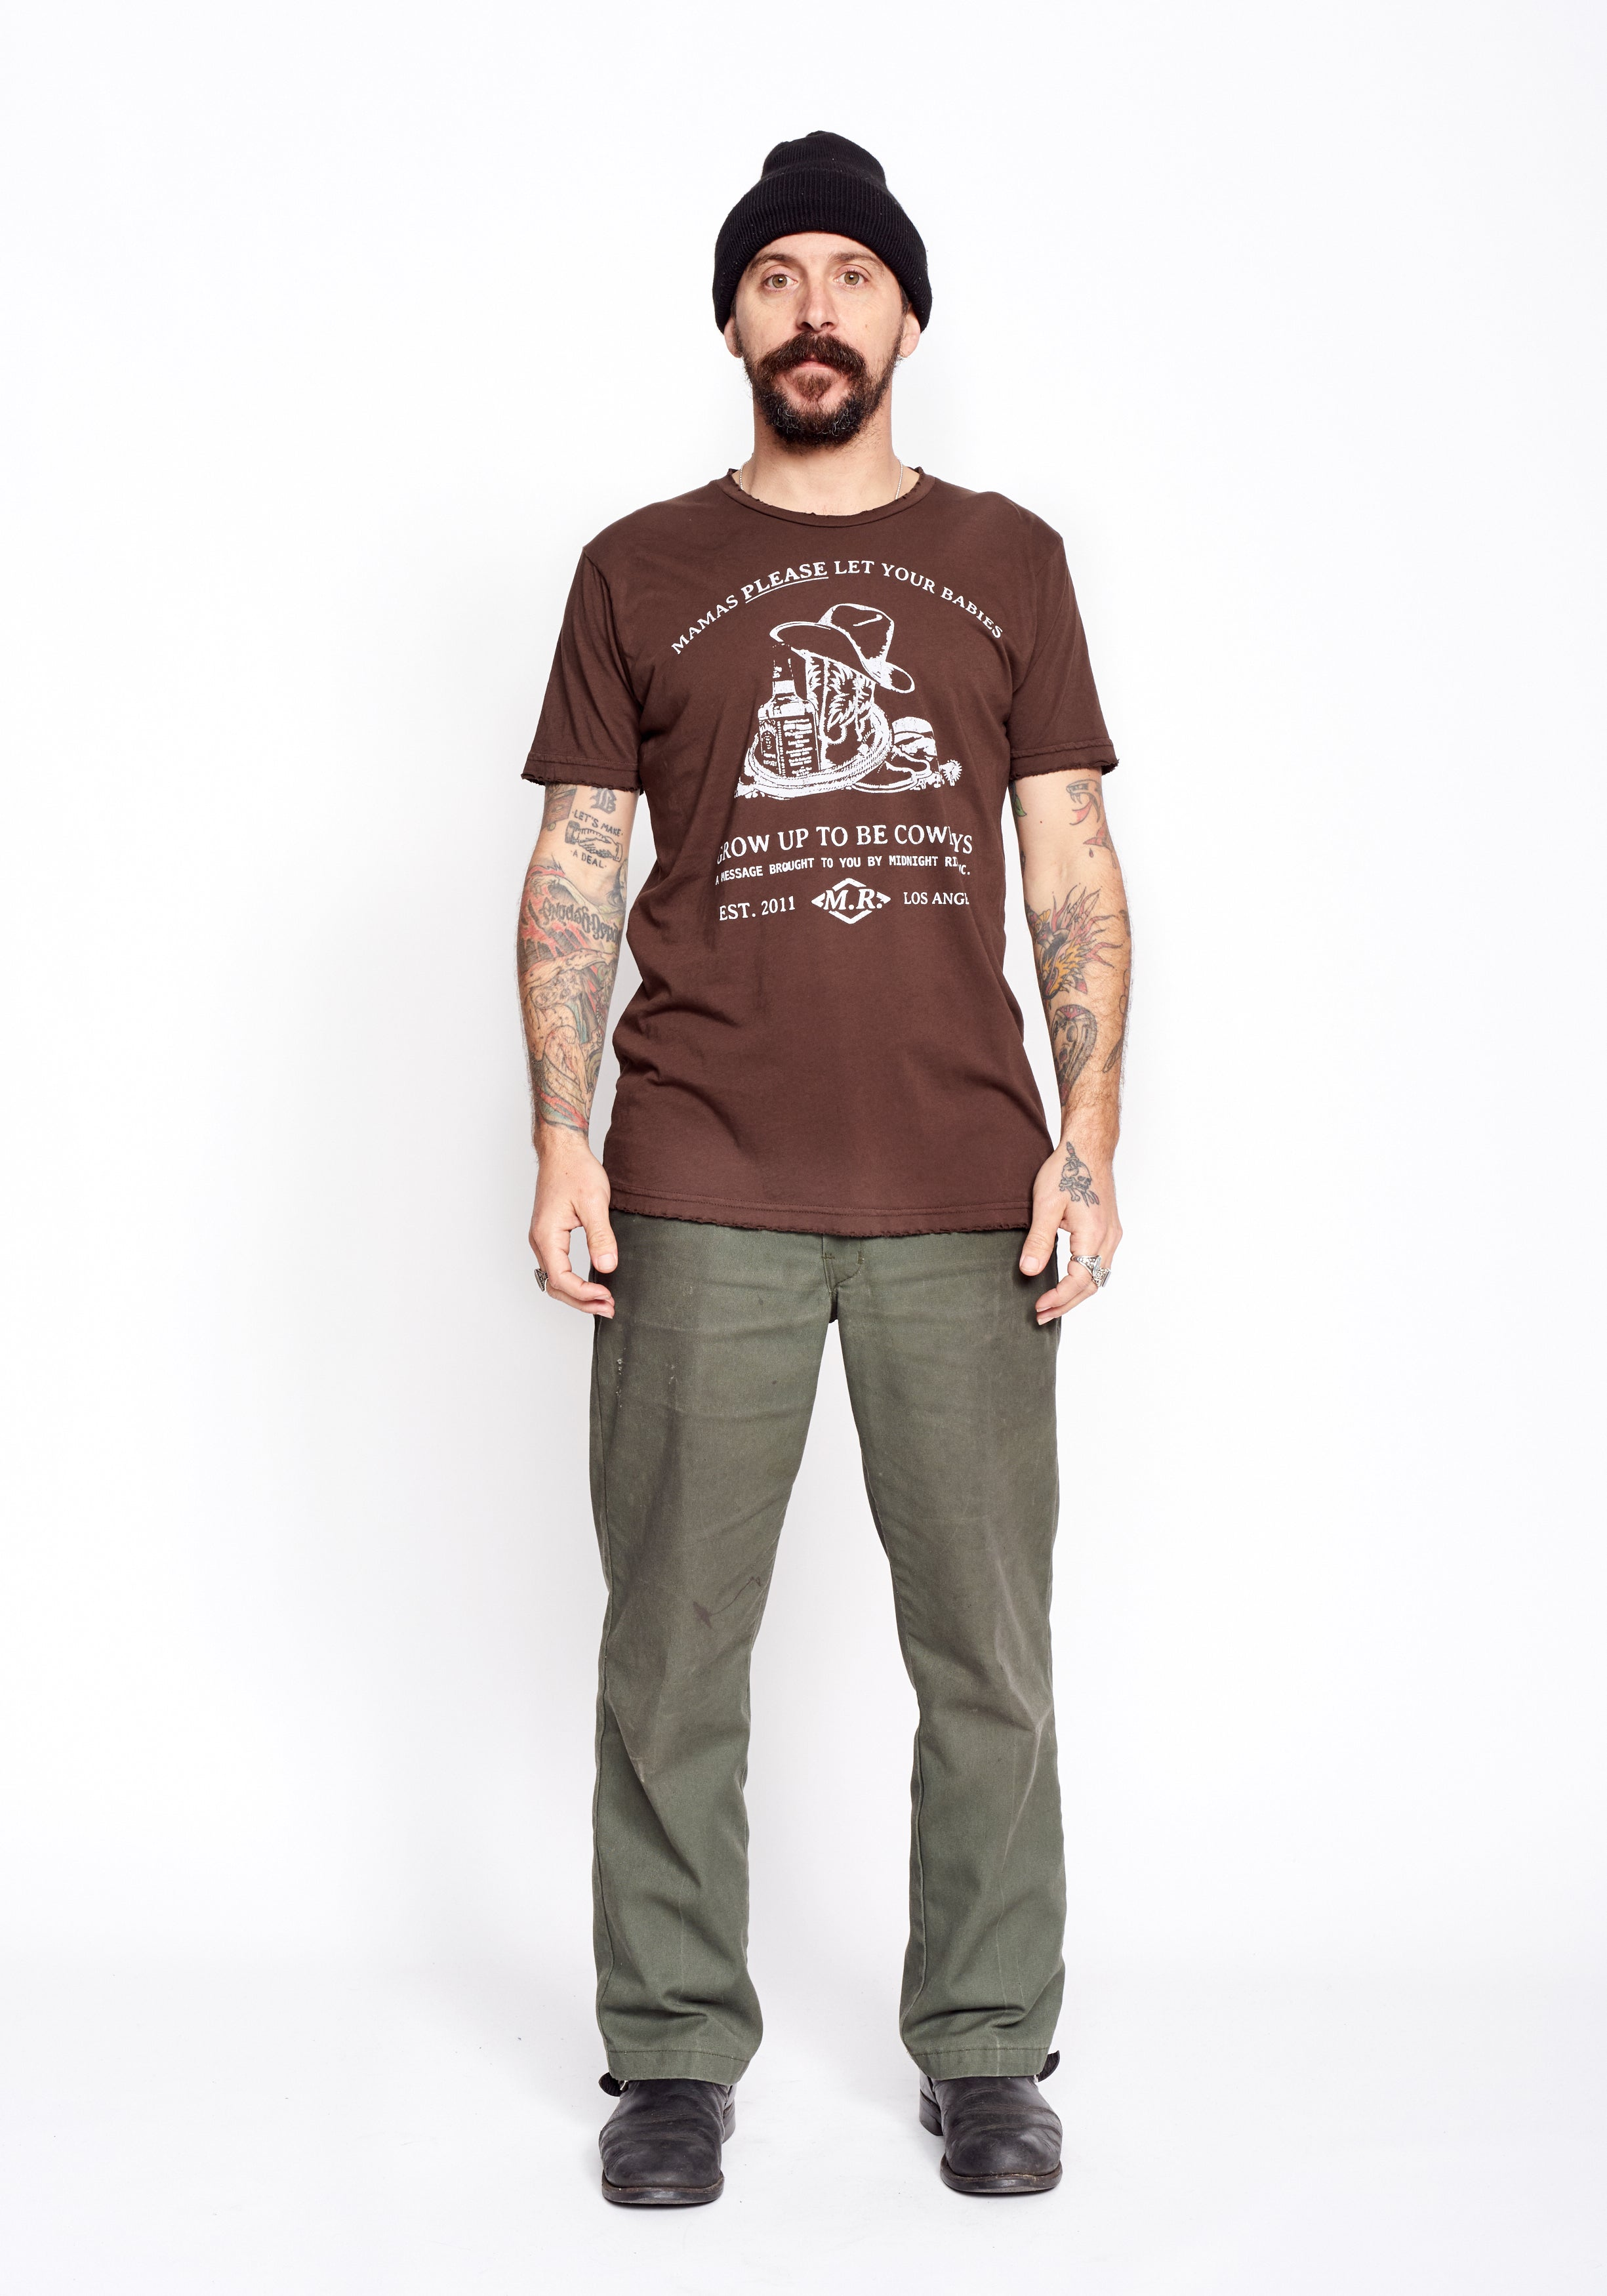 Please Let Your Babies Grow Up To Be Cowboys Men's Crew - Tobacco Brown